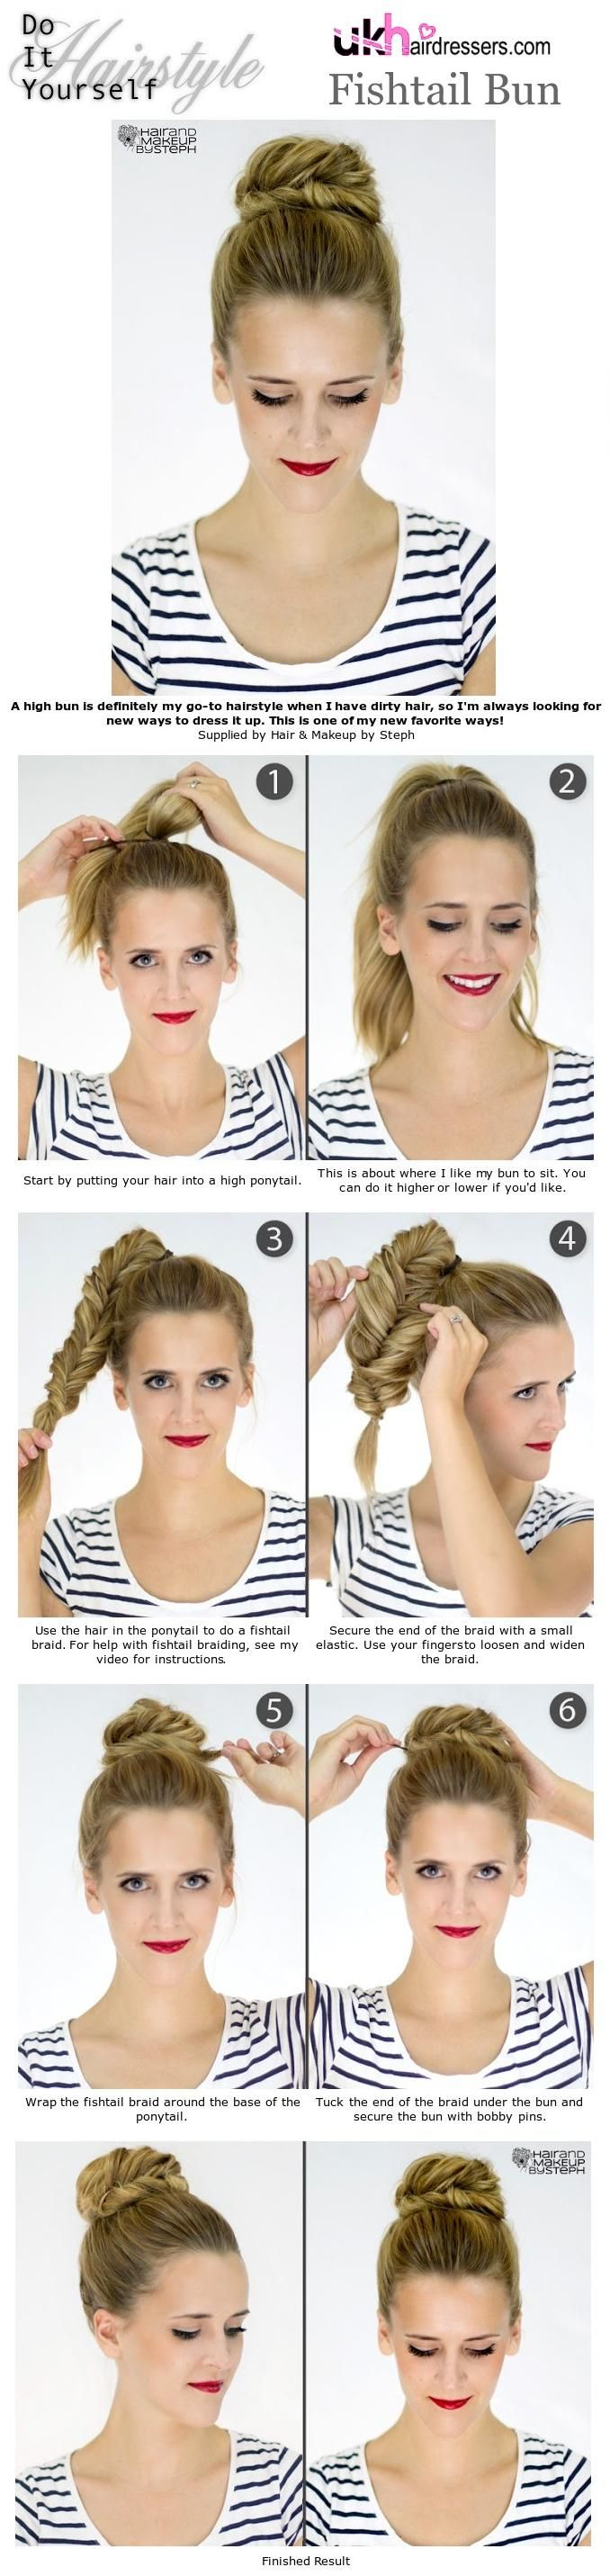 112 best Hairstyles images on Pinterest